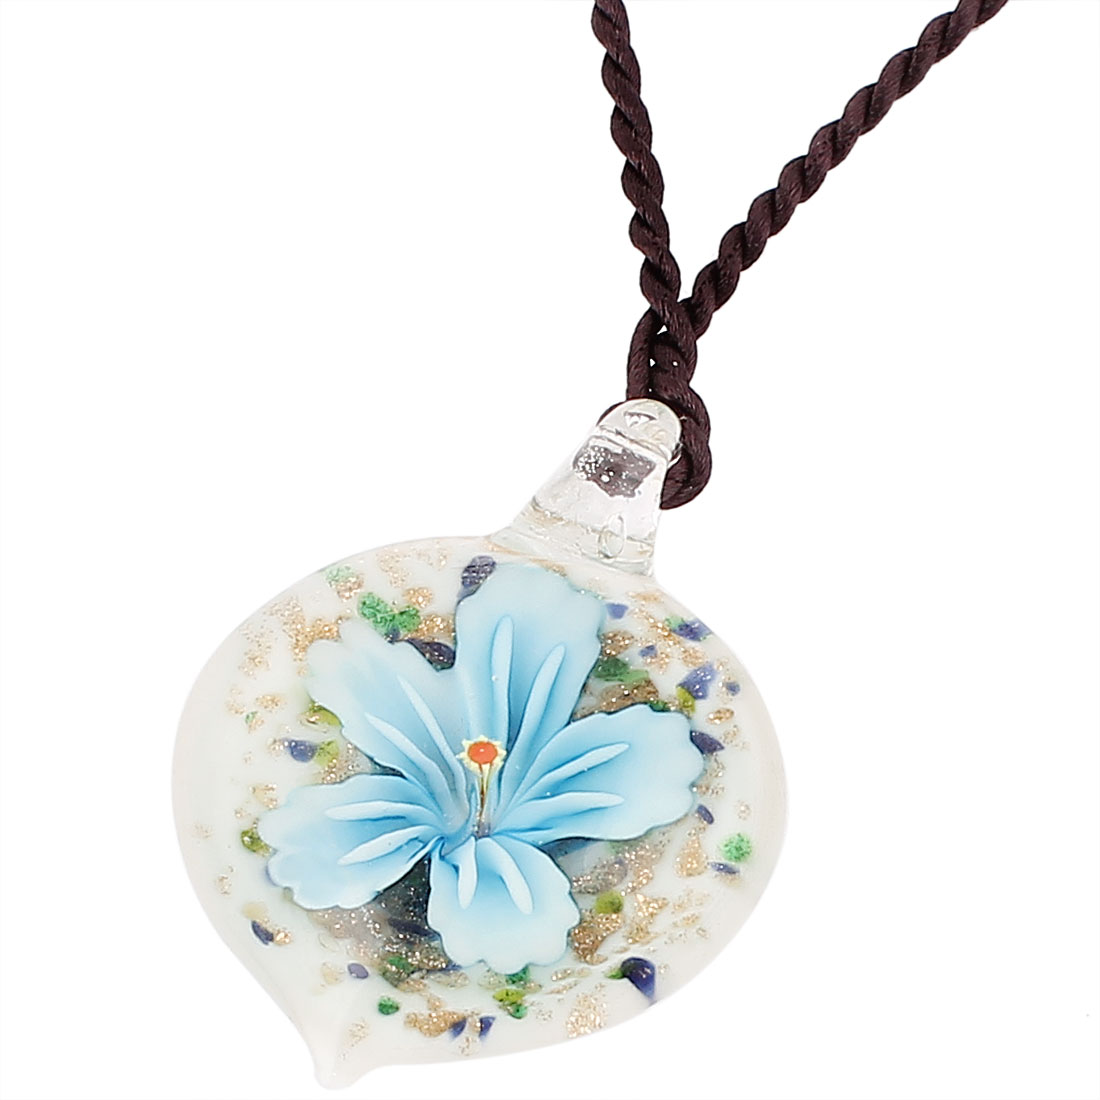 Shiny Powder Decor Glass Pressed Flower Pendant Necklace Neckwear Blue White